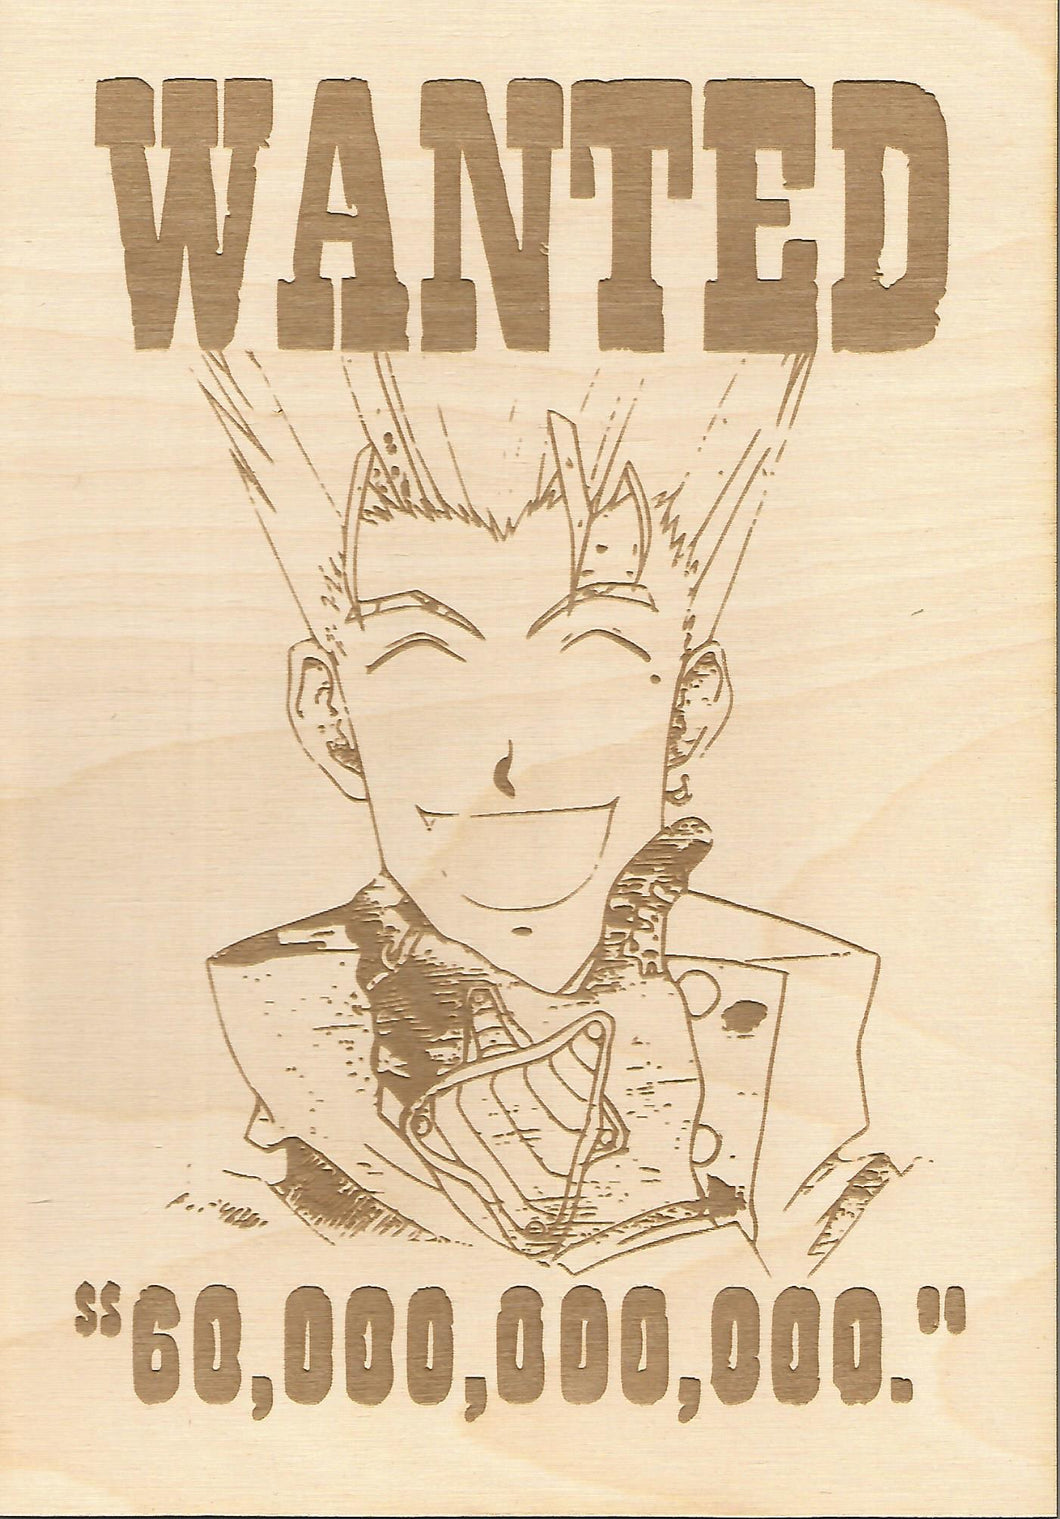 Trigun- Vash the Stampede Wooden Wanted Poster